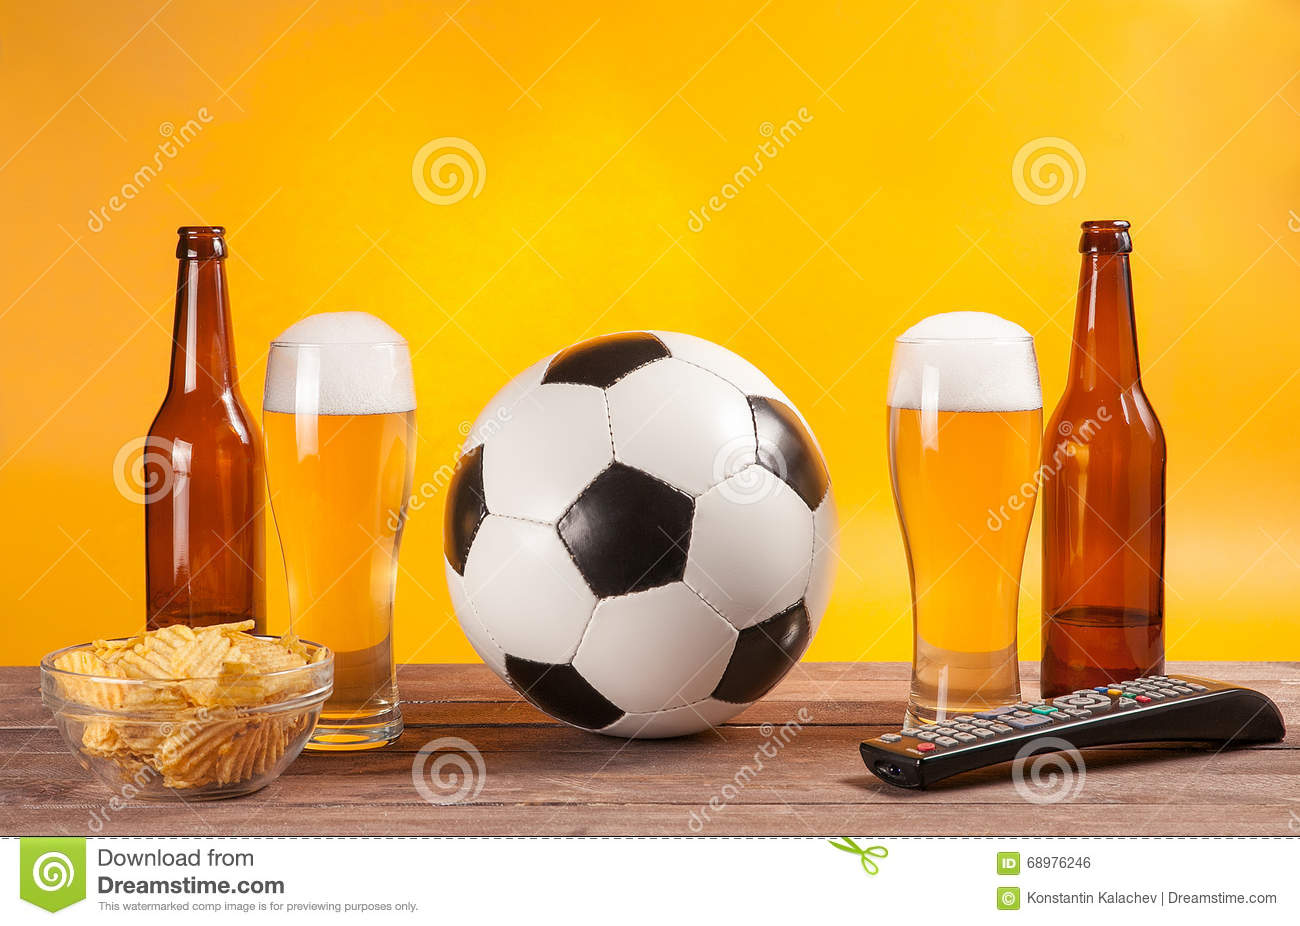 Glass with beer and soccer ball near tv remote